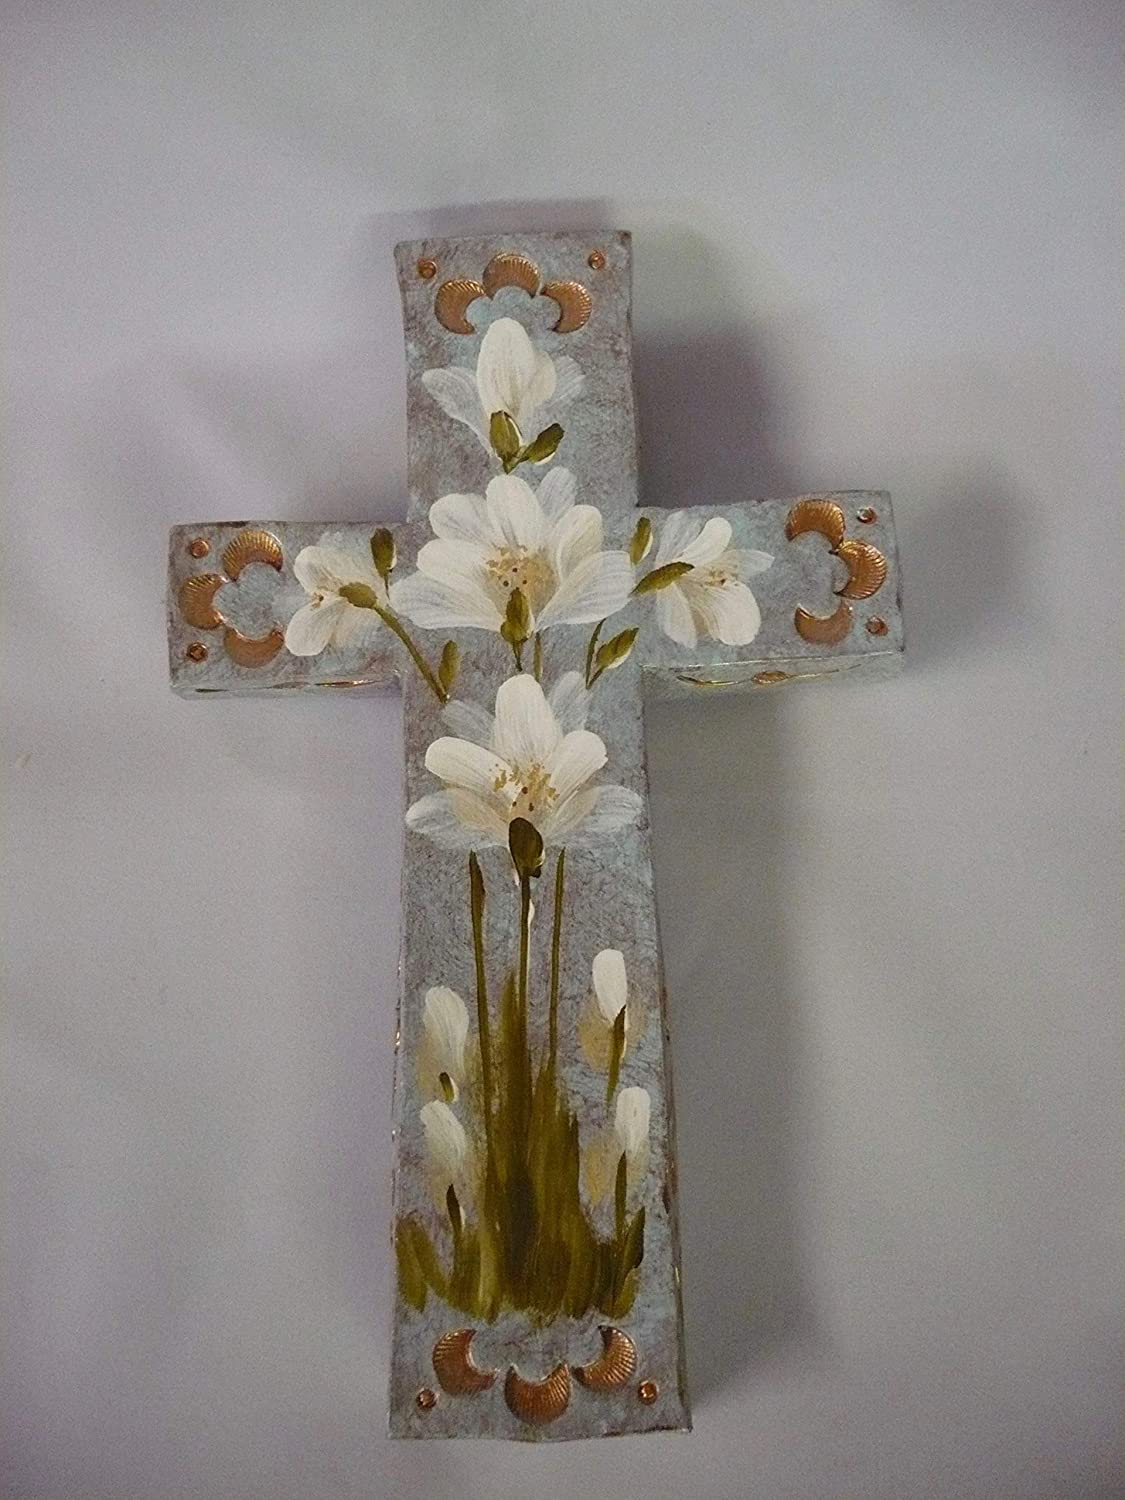 Christian Decorative Wall Handcrafted Max 84% OFF Cross Outlet ☆ Free Shipping